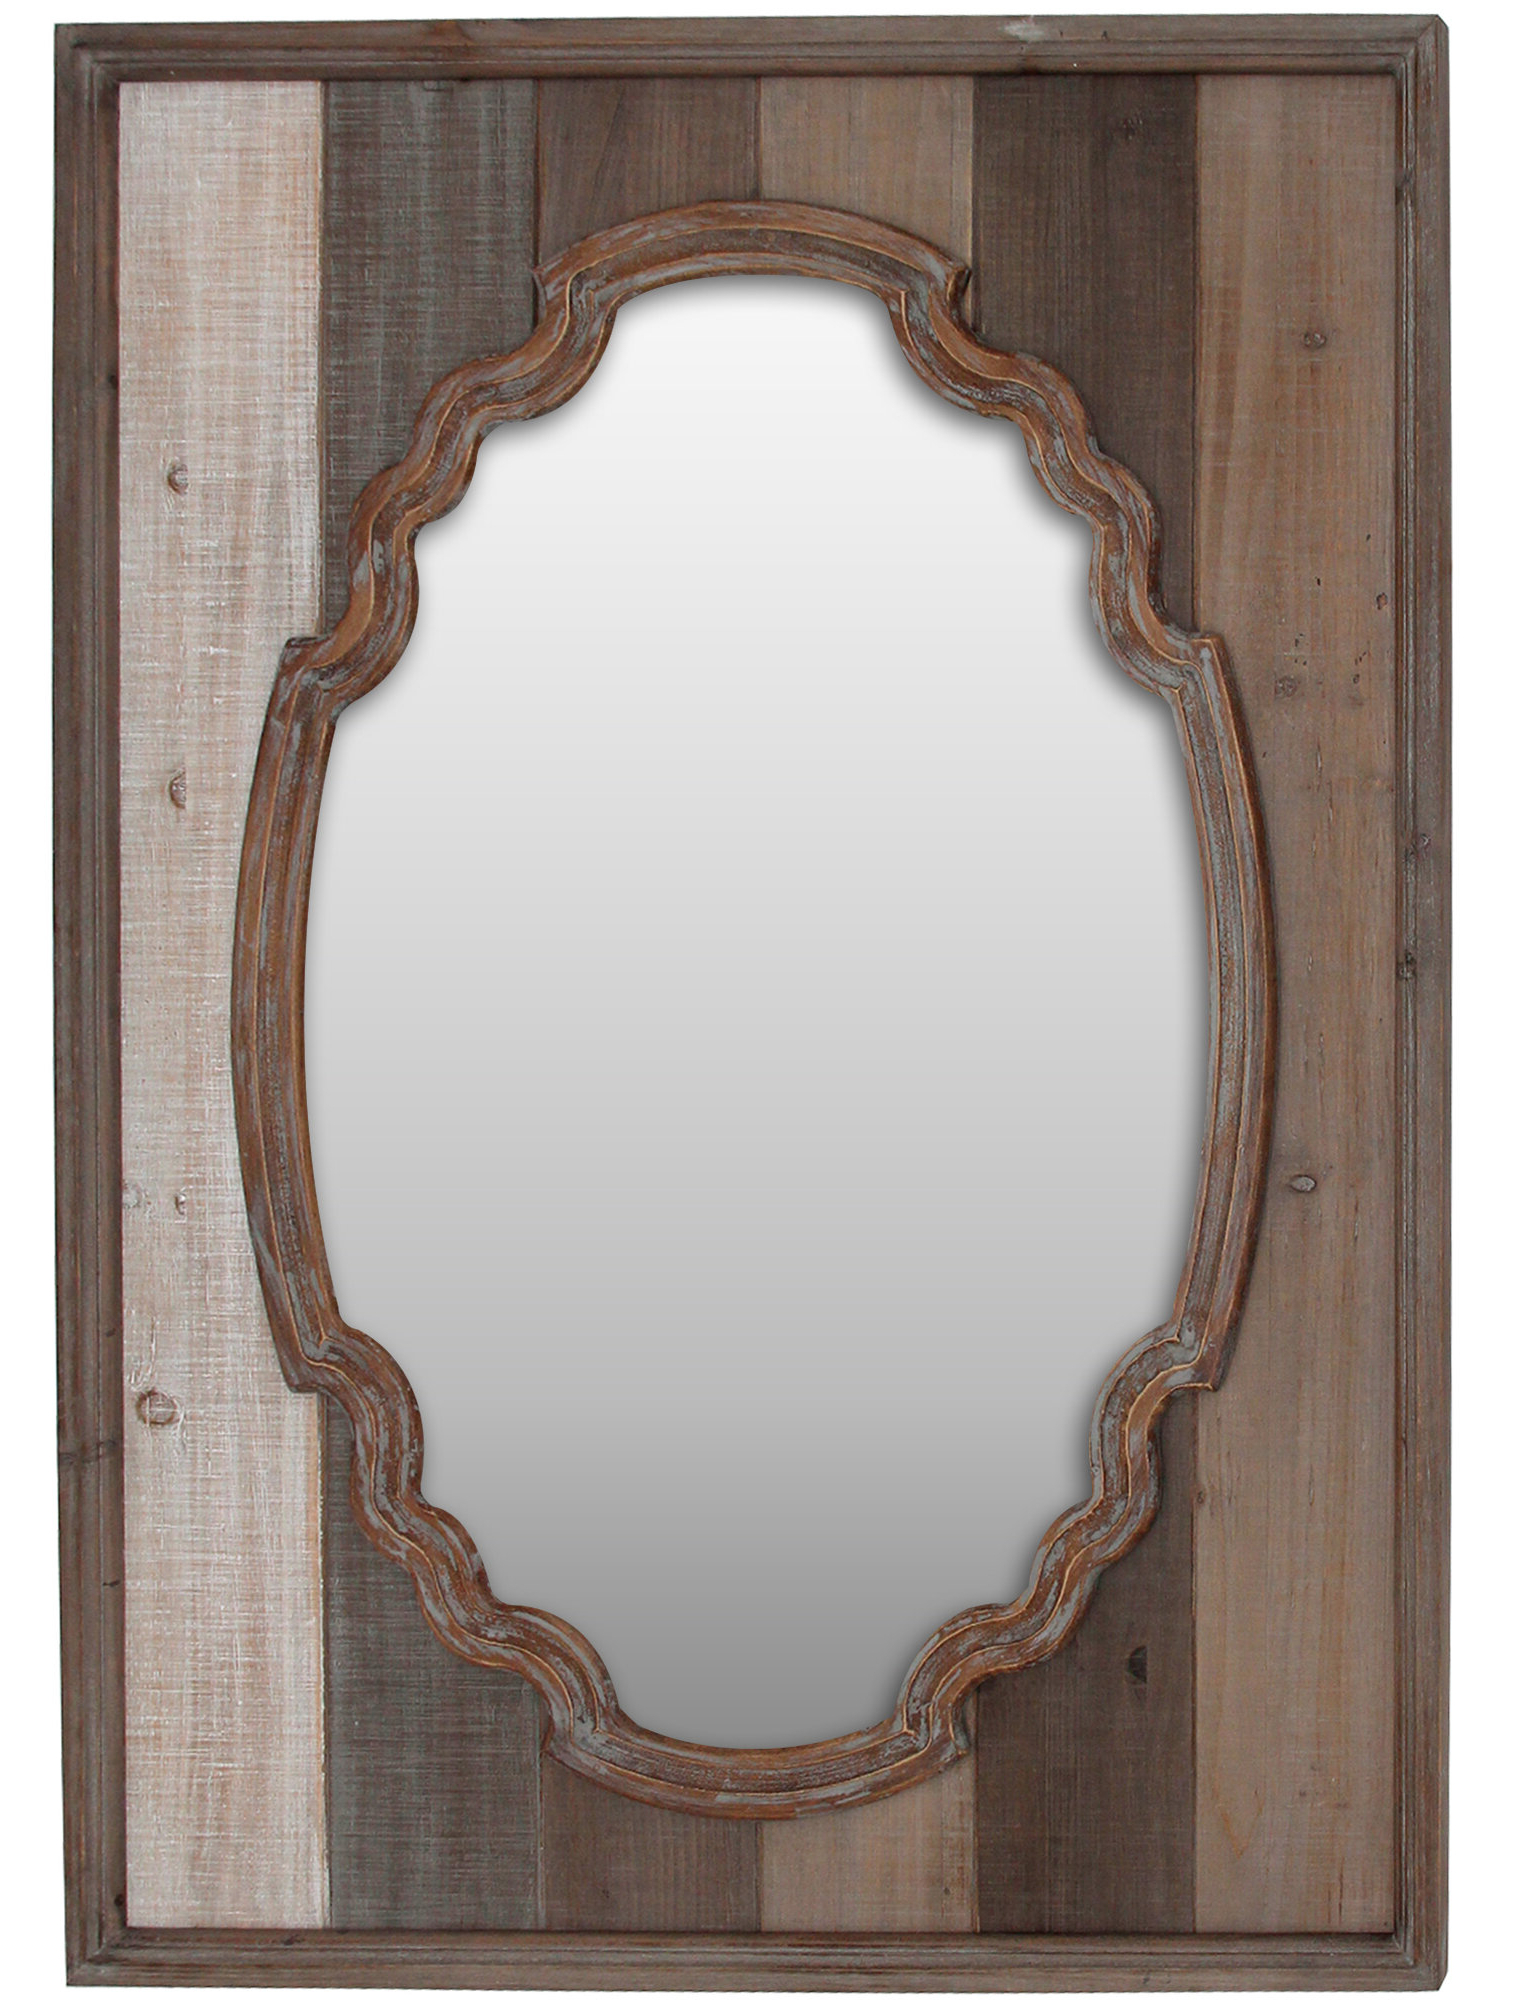 Jaylyn Elegant Farmstead Rustic Accent Mirror Inside Favorite Peetz Modern Rustic Accent Mirrors (Gallery 16 of 20)